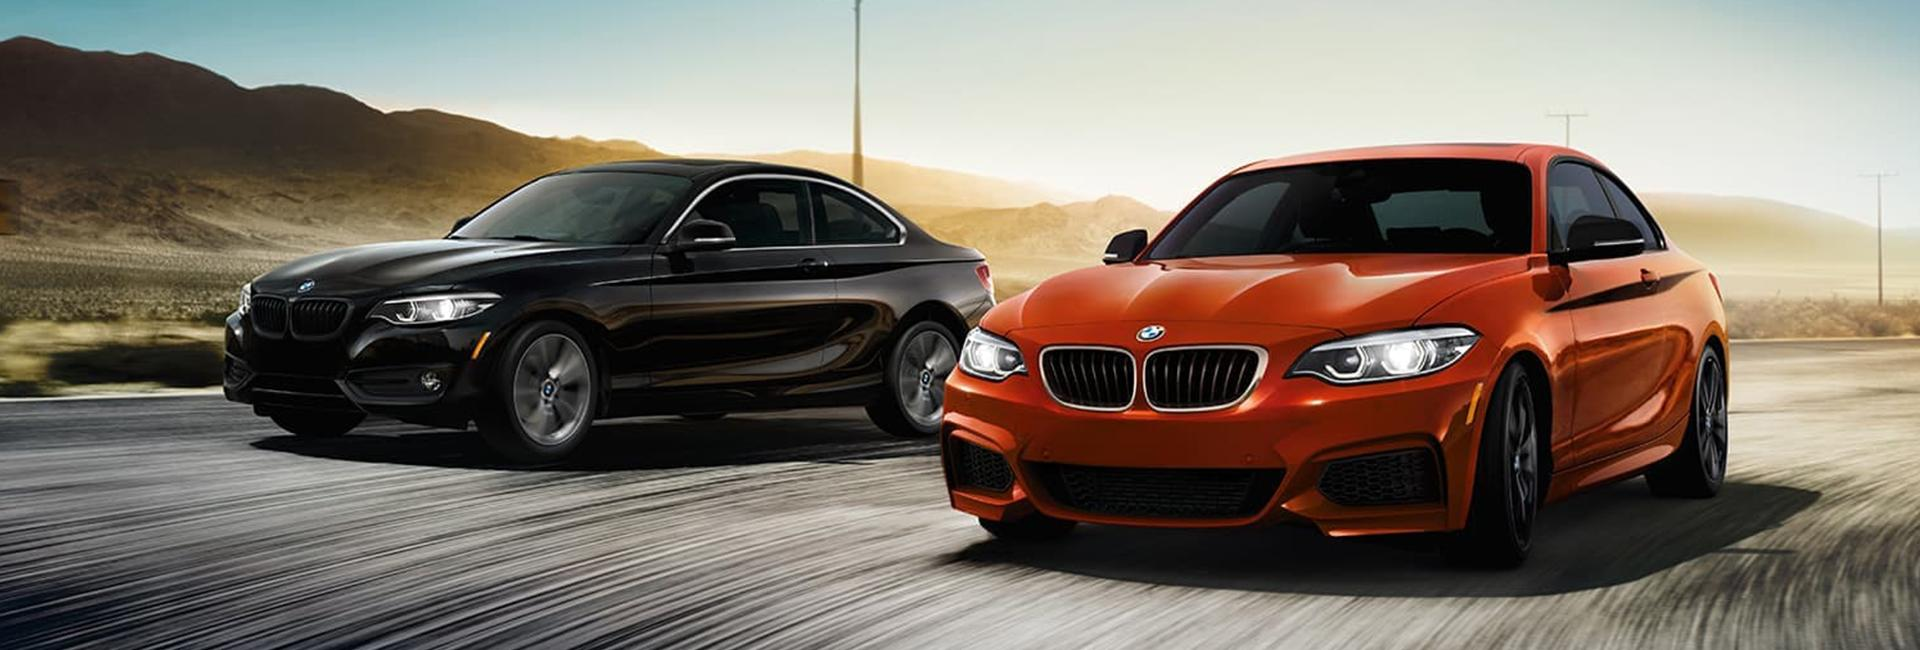 Two BMW 2 Series side by side in motion